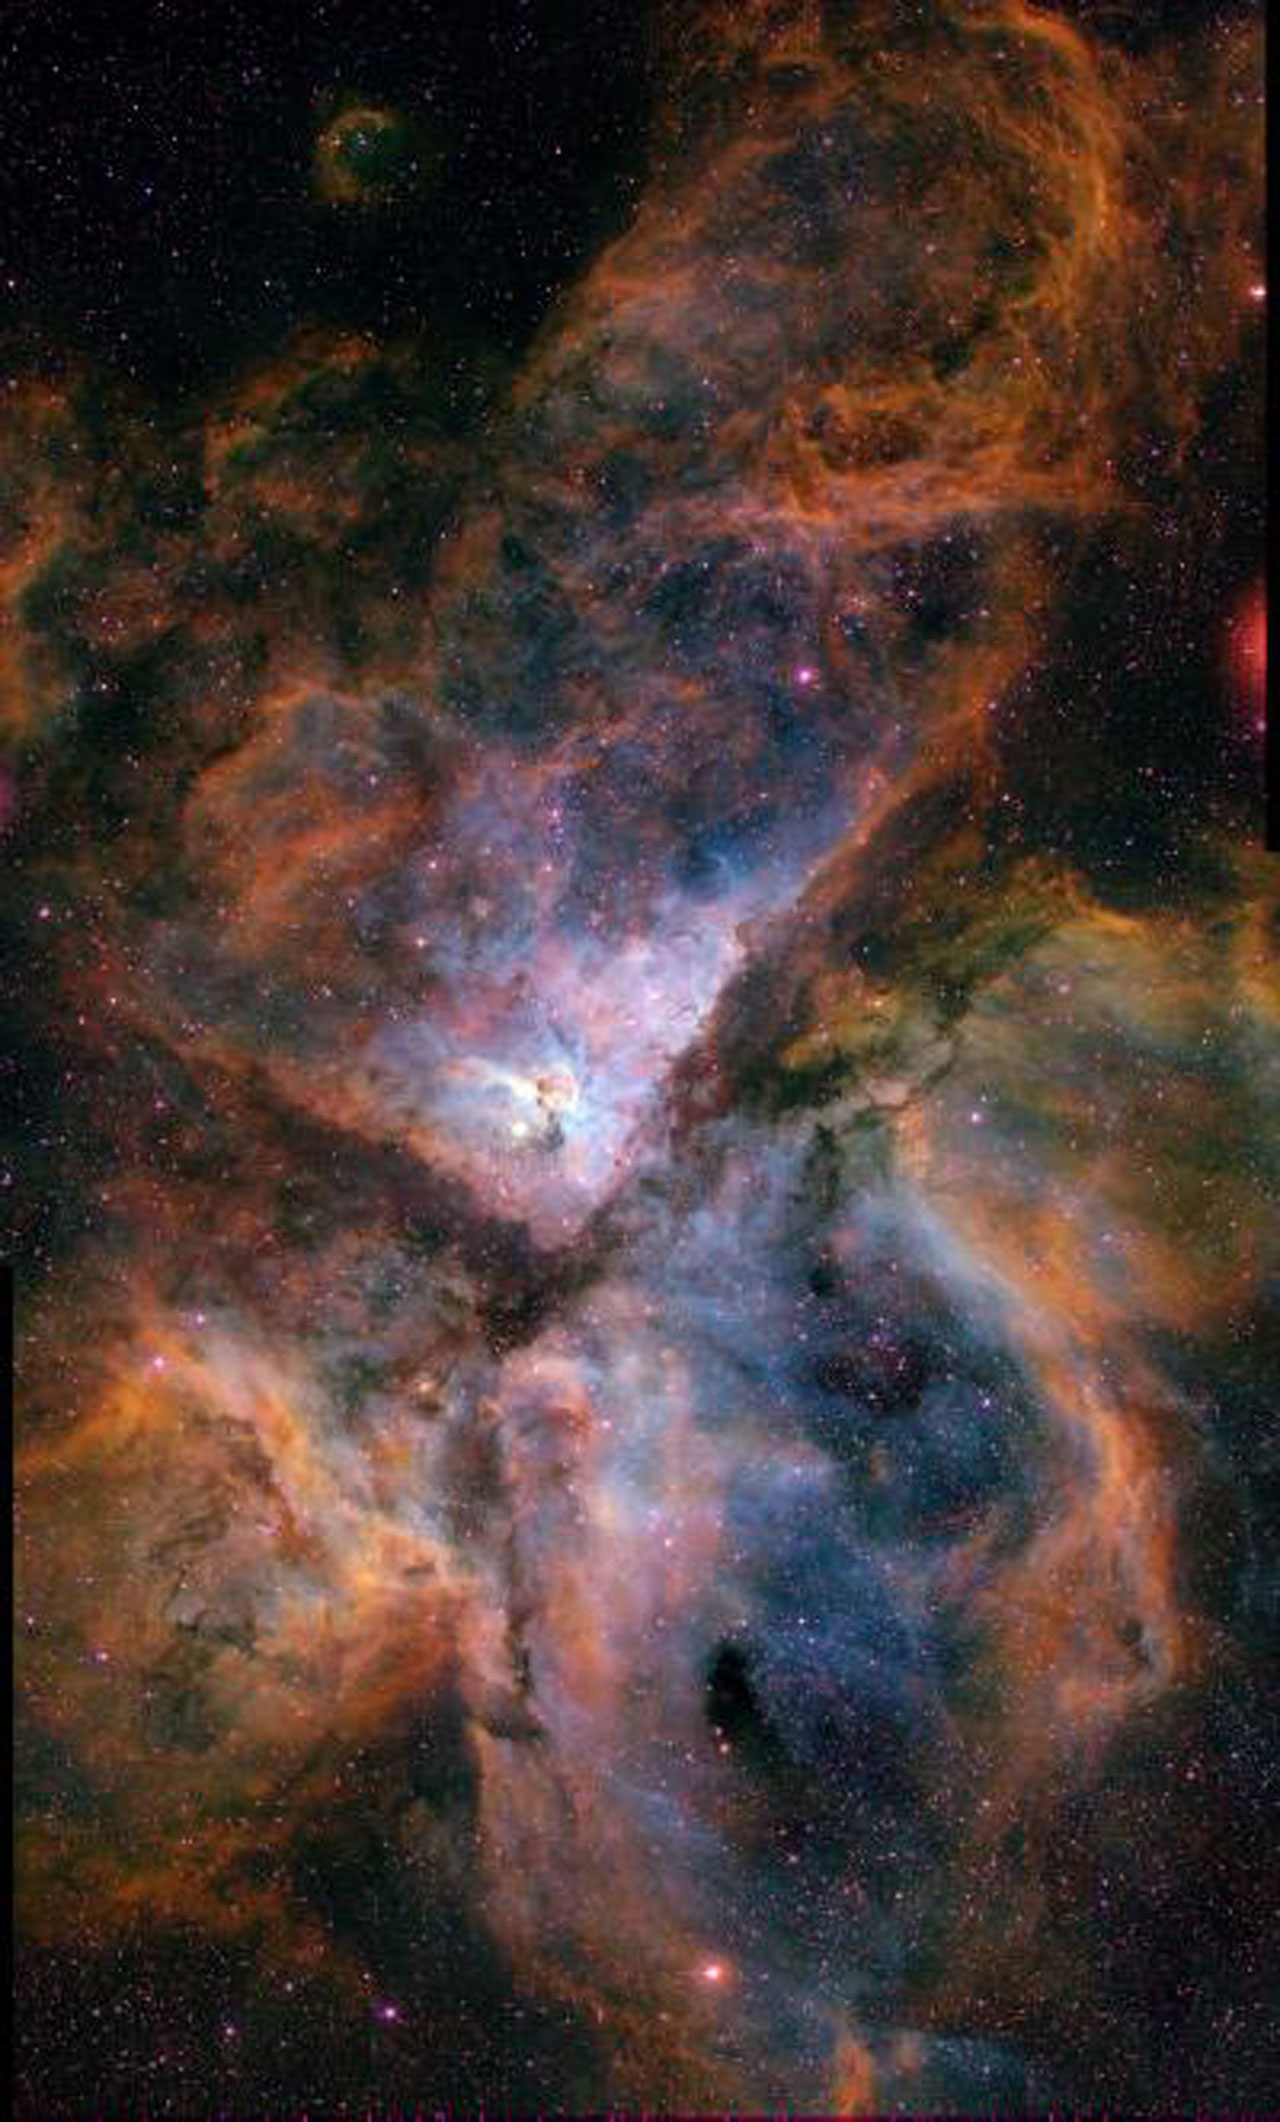 Ground-Based Image of Carina Nebula (NGC 3372)